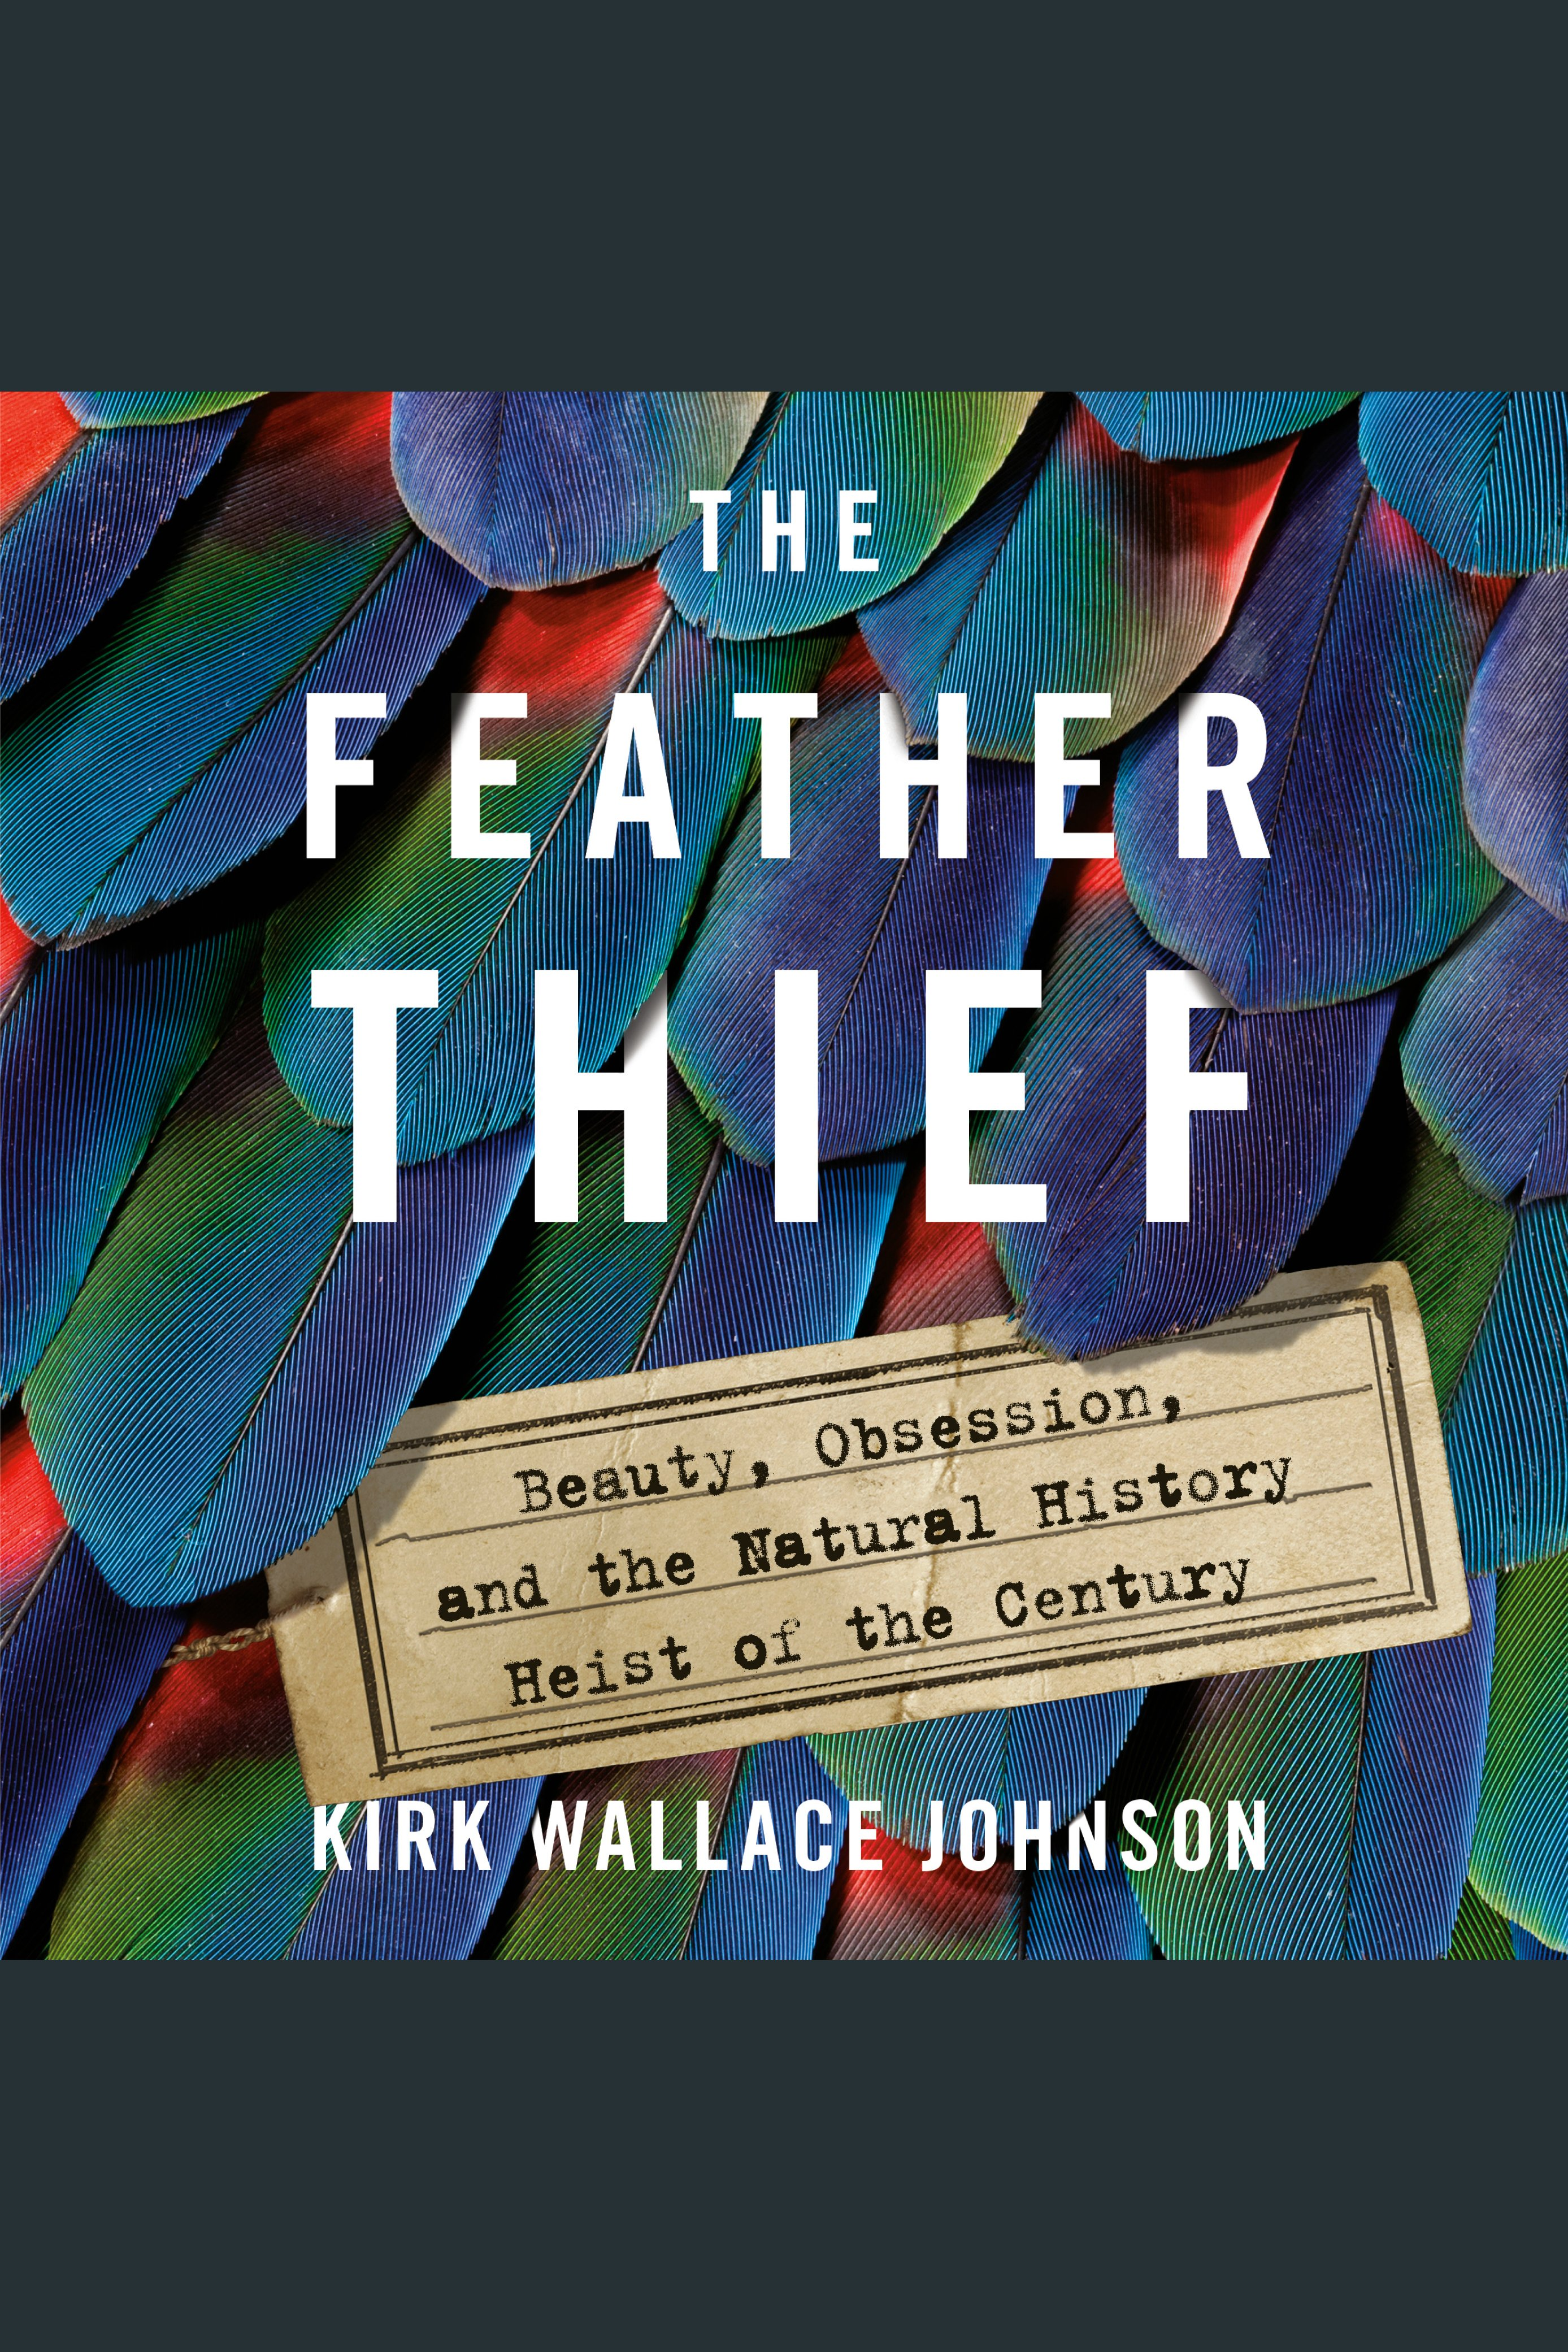 The feather thief beauty, obsession, and the natural history heist of the century cover image